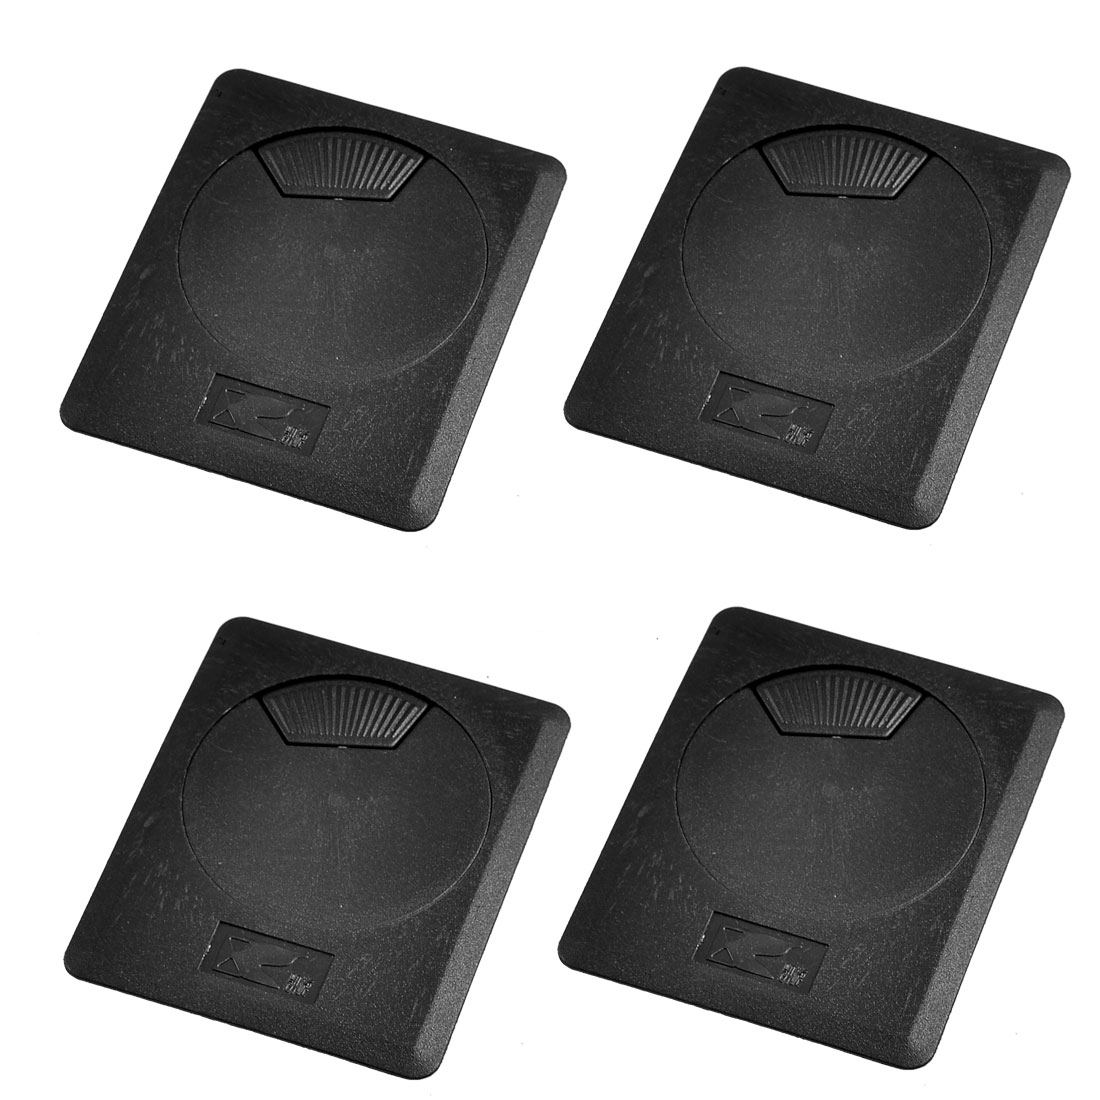 4 Pcs Rectangle Shape Black Plastic Computer Desk Grommet Table Hole Cover